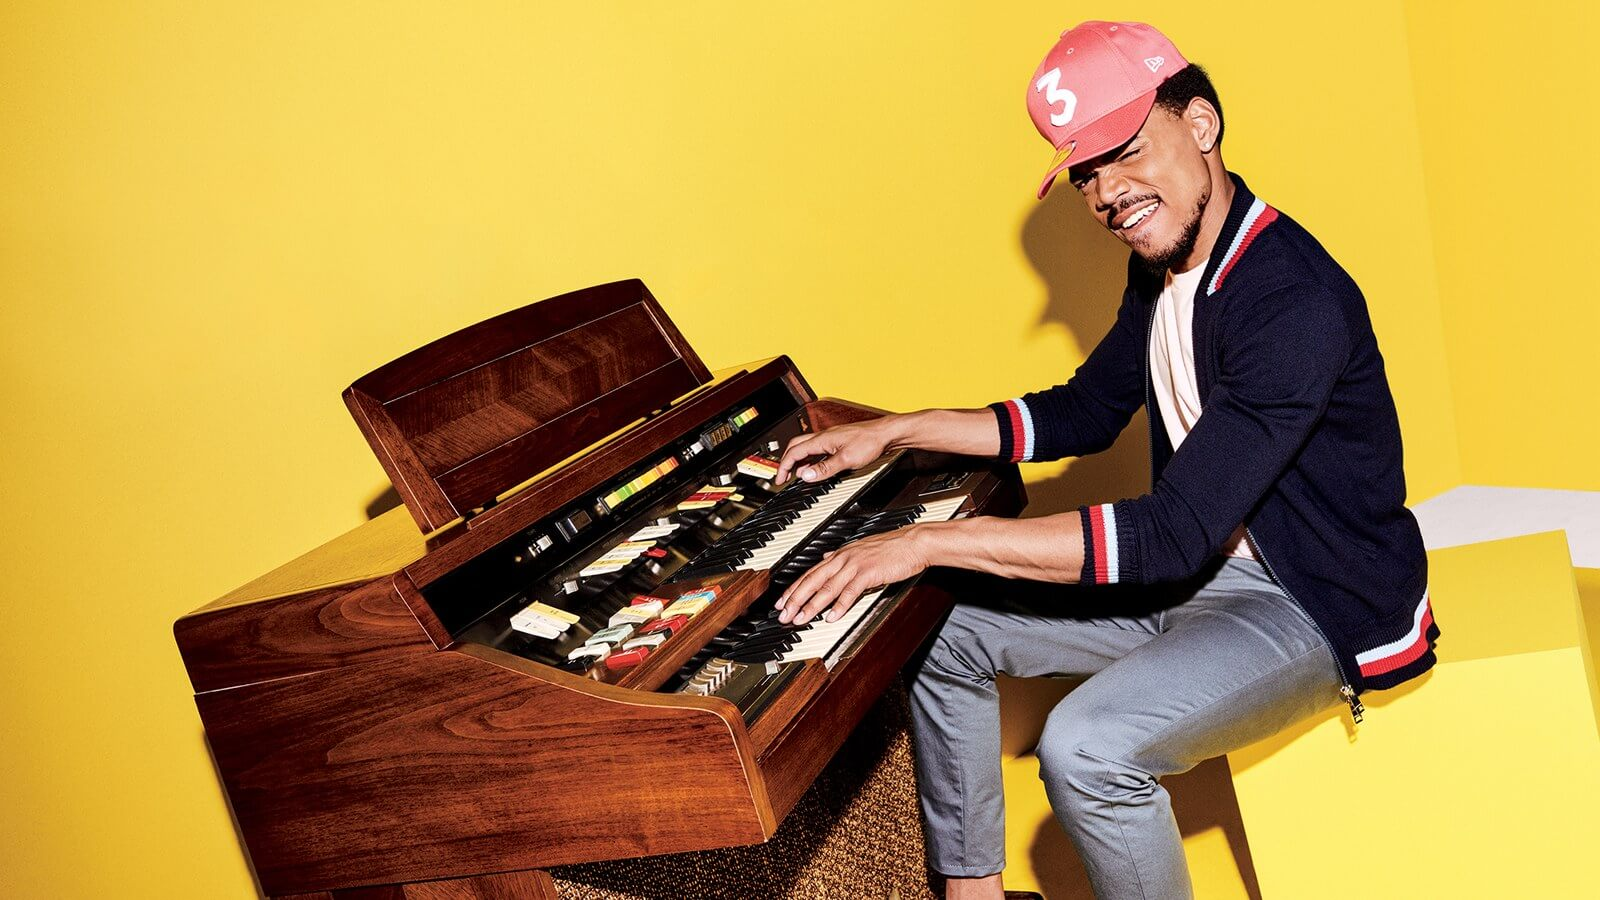 Chance The Rapper. Fotografía: Eric ray Davidson/GQ